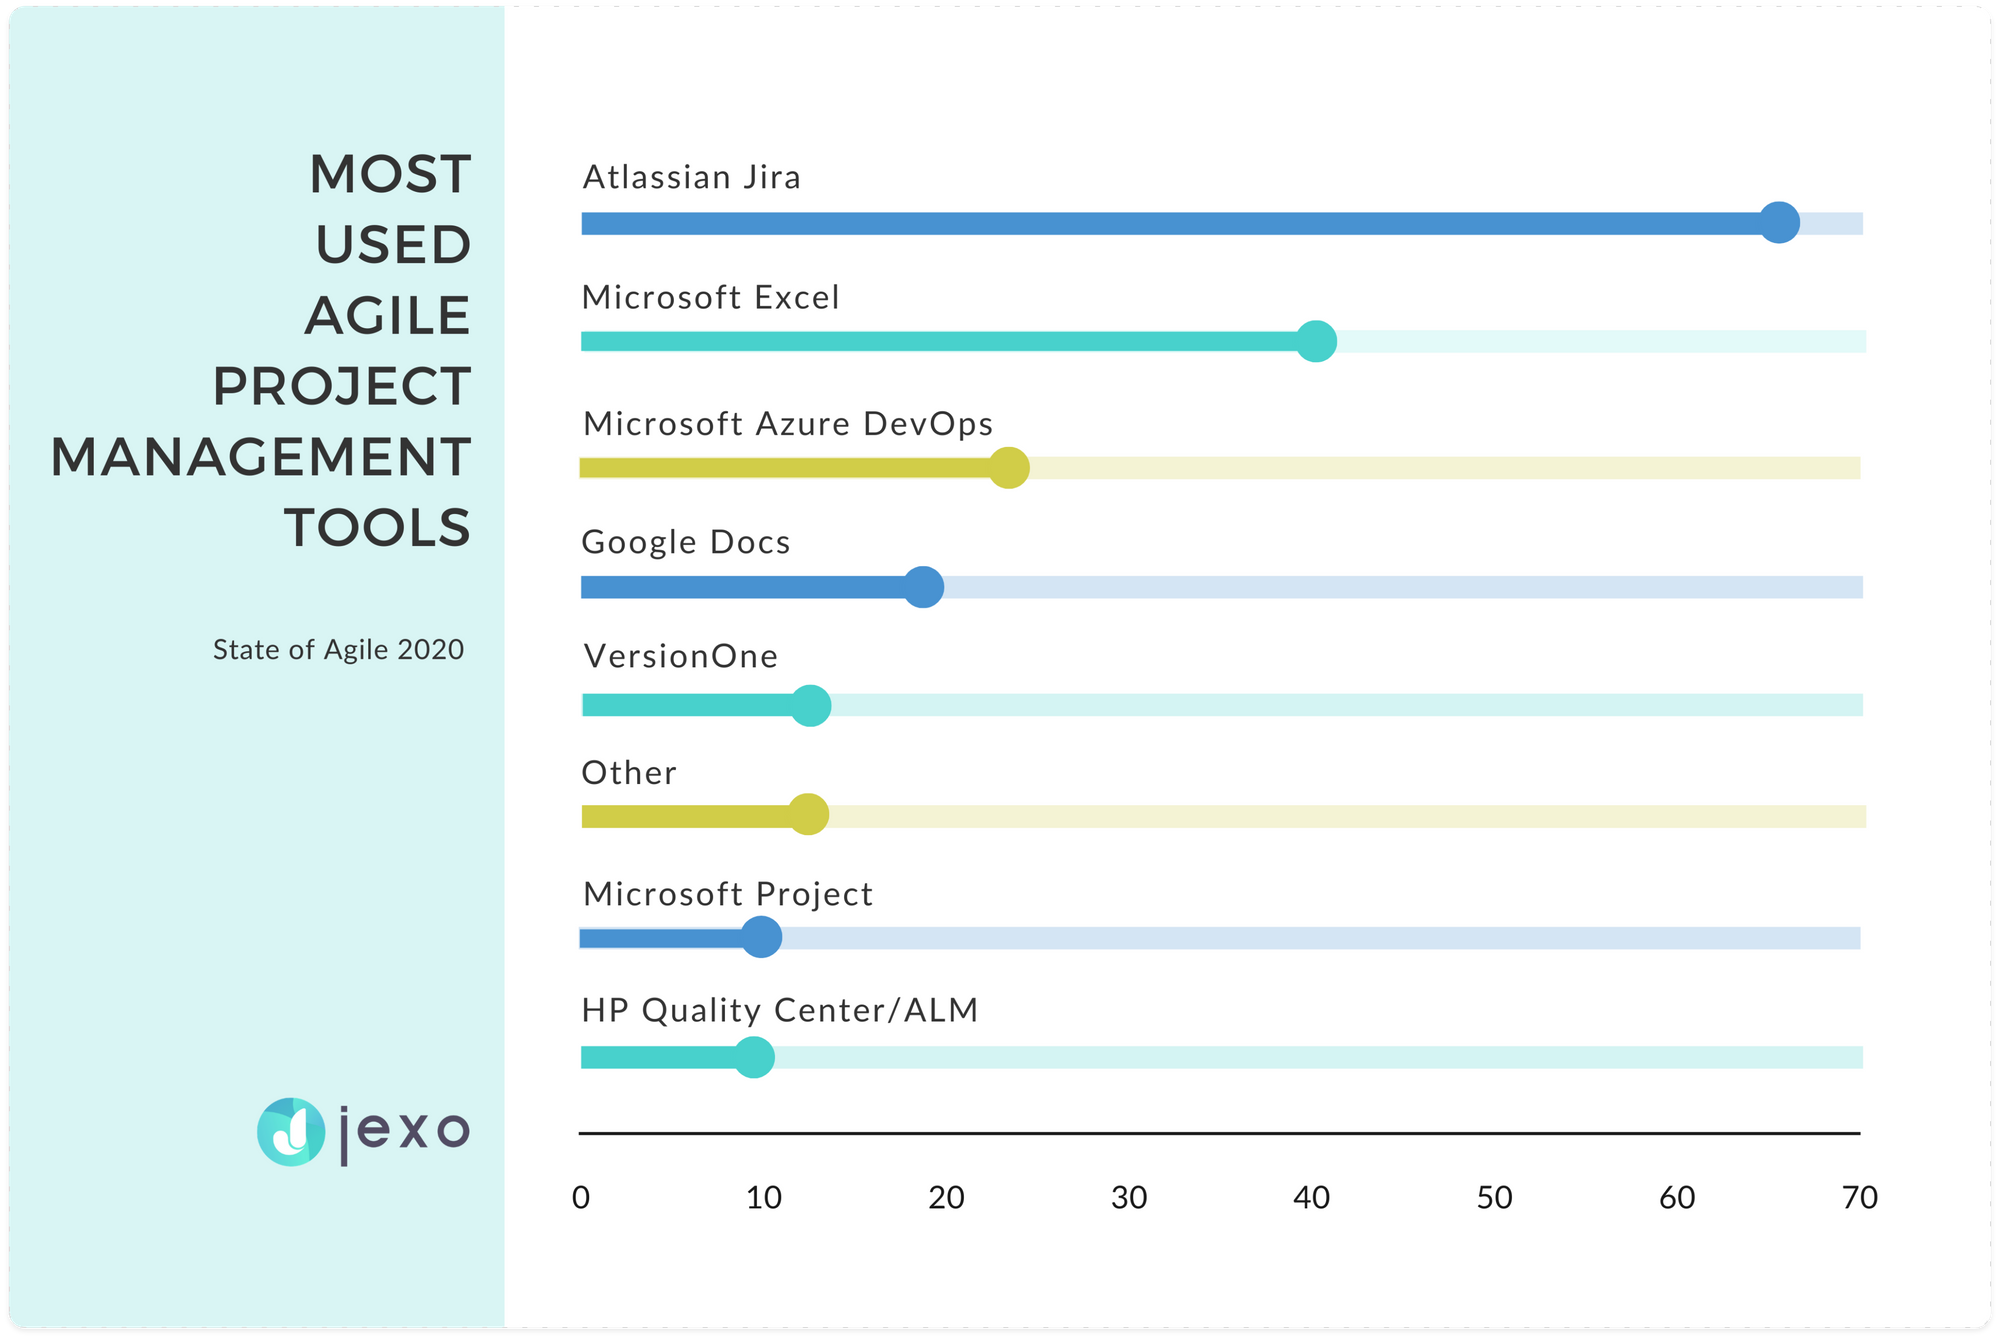 Jira is the most used Agile project management tool in 2020